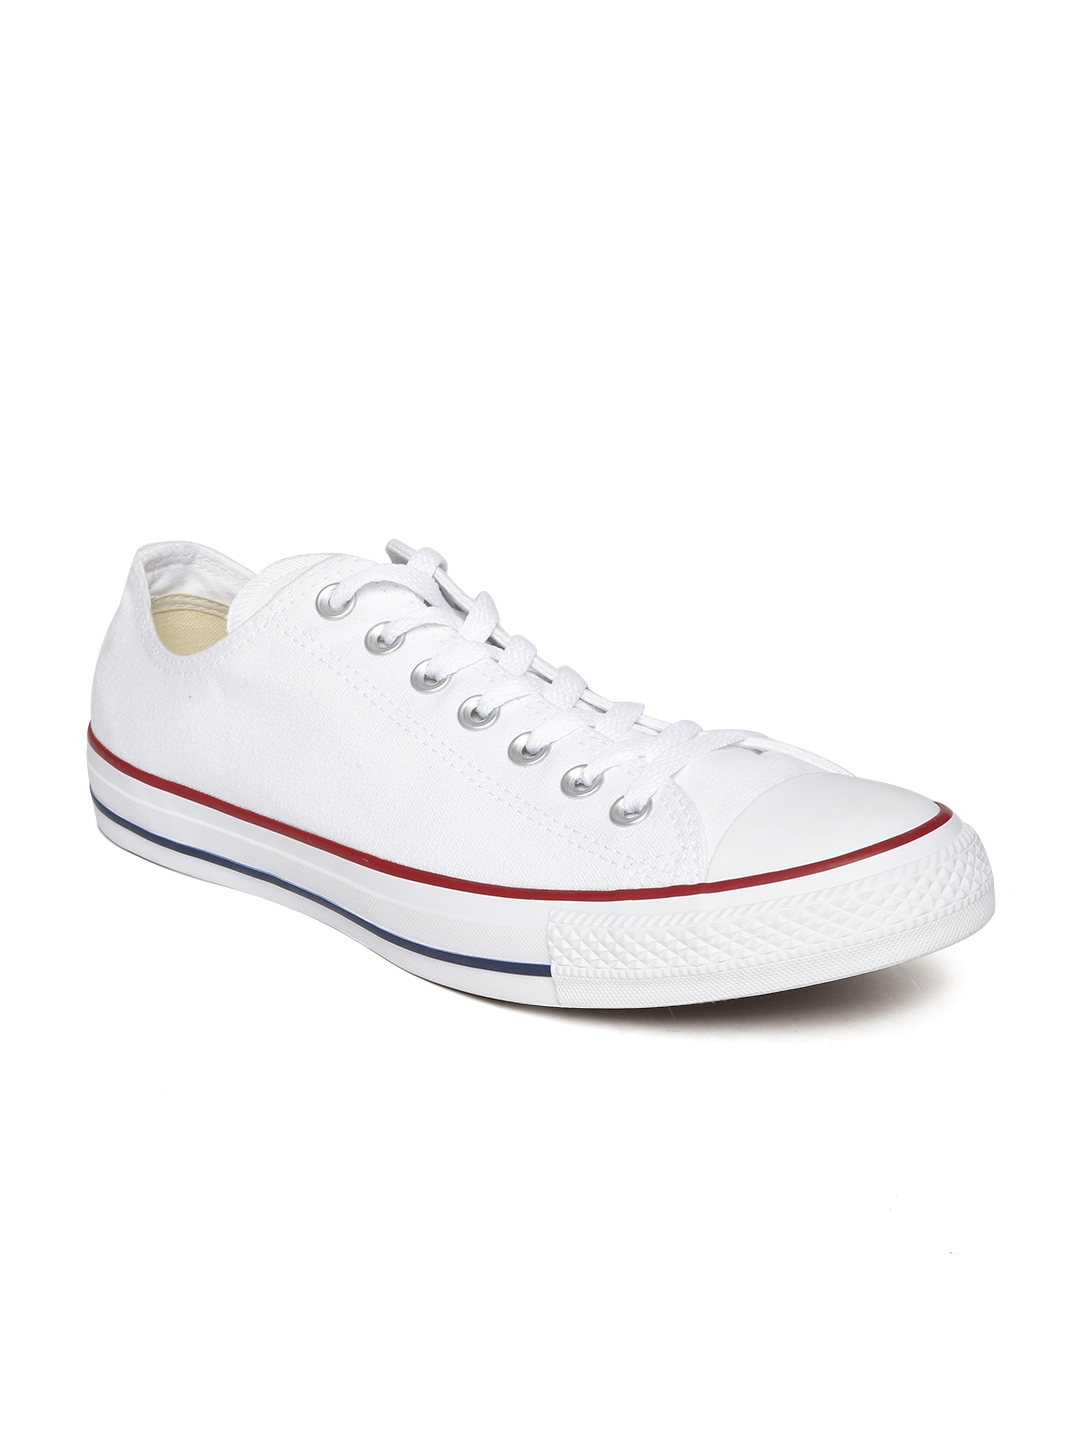 1bc28f548f08 Buy Converse Unisex White Canvas Shoes - Casual Shoes for Unisex 1459690